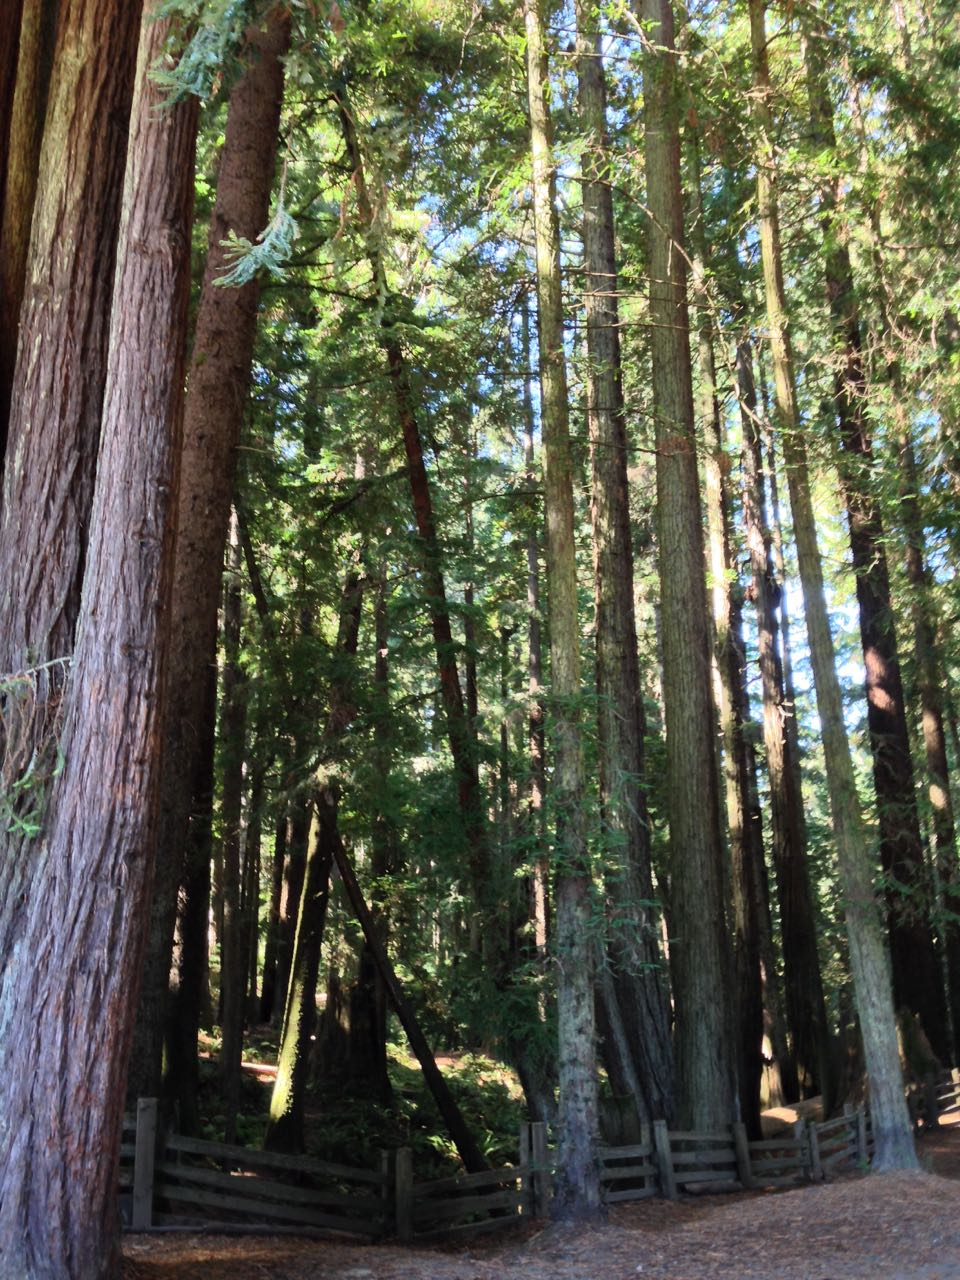 Redwoods 2017 10 01 83 Of 244